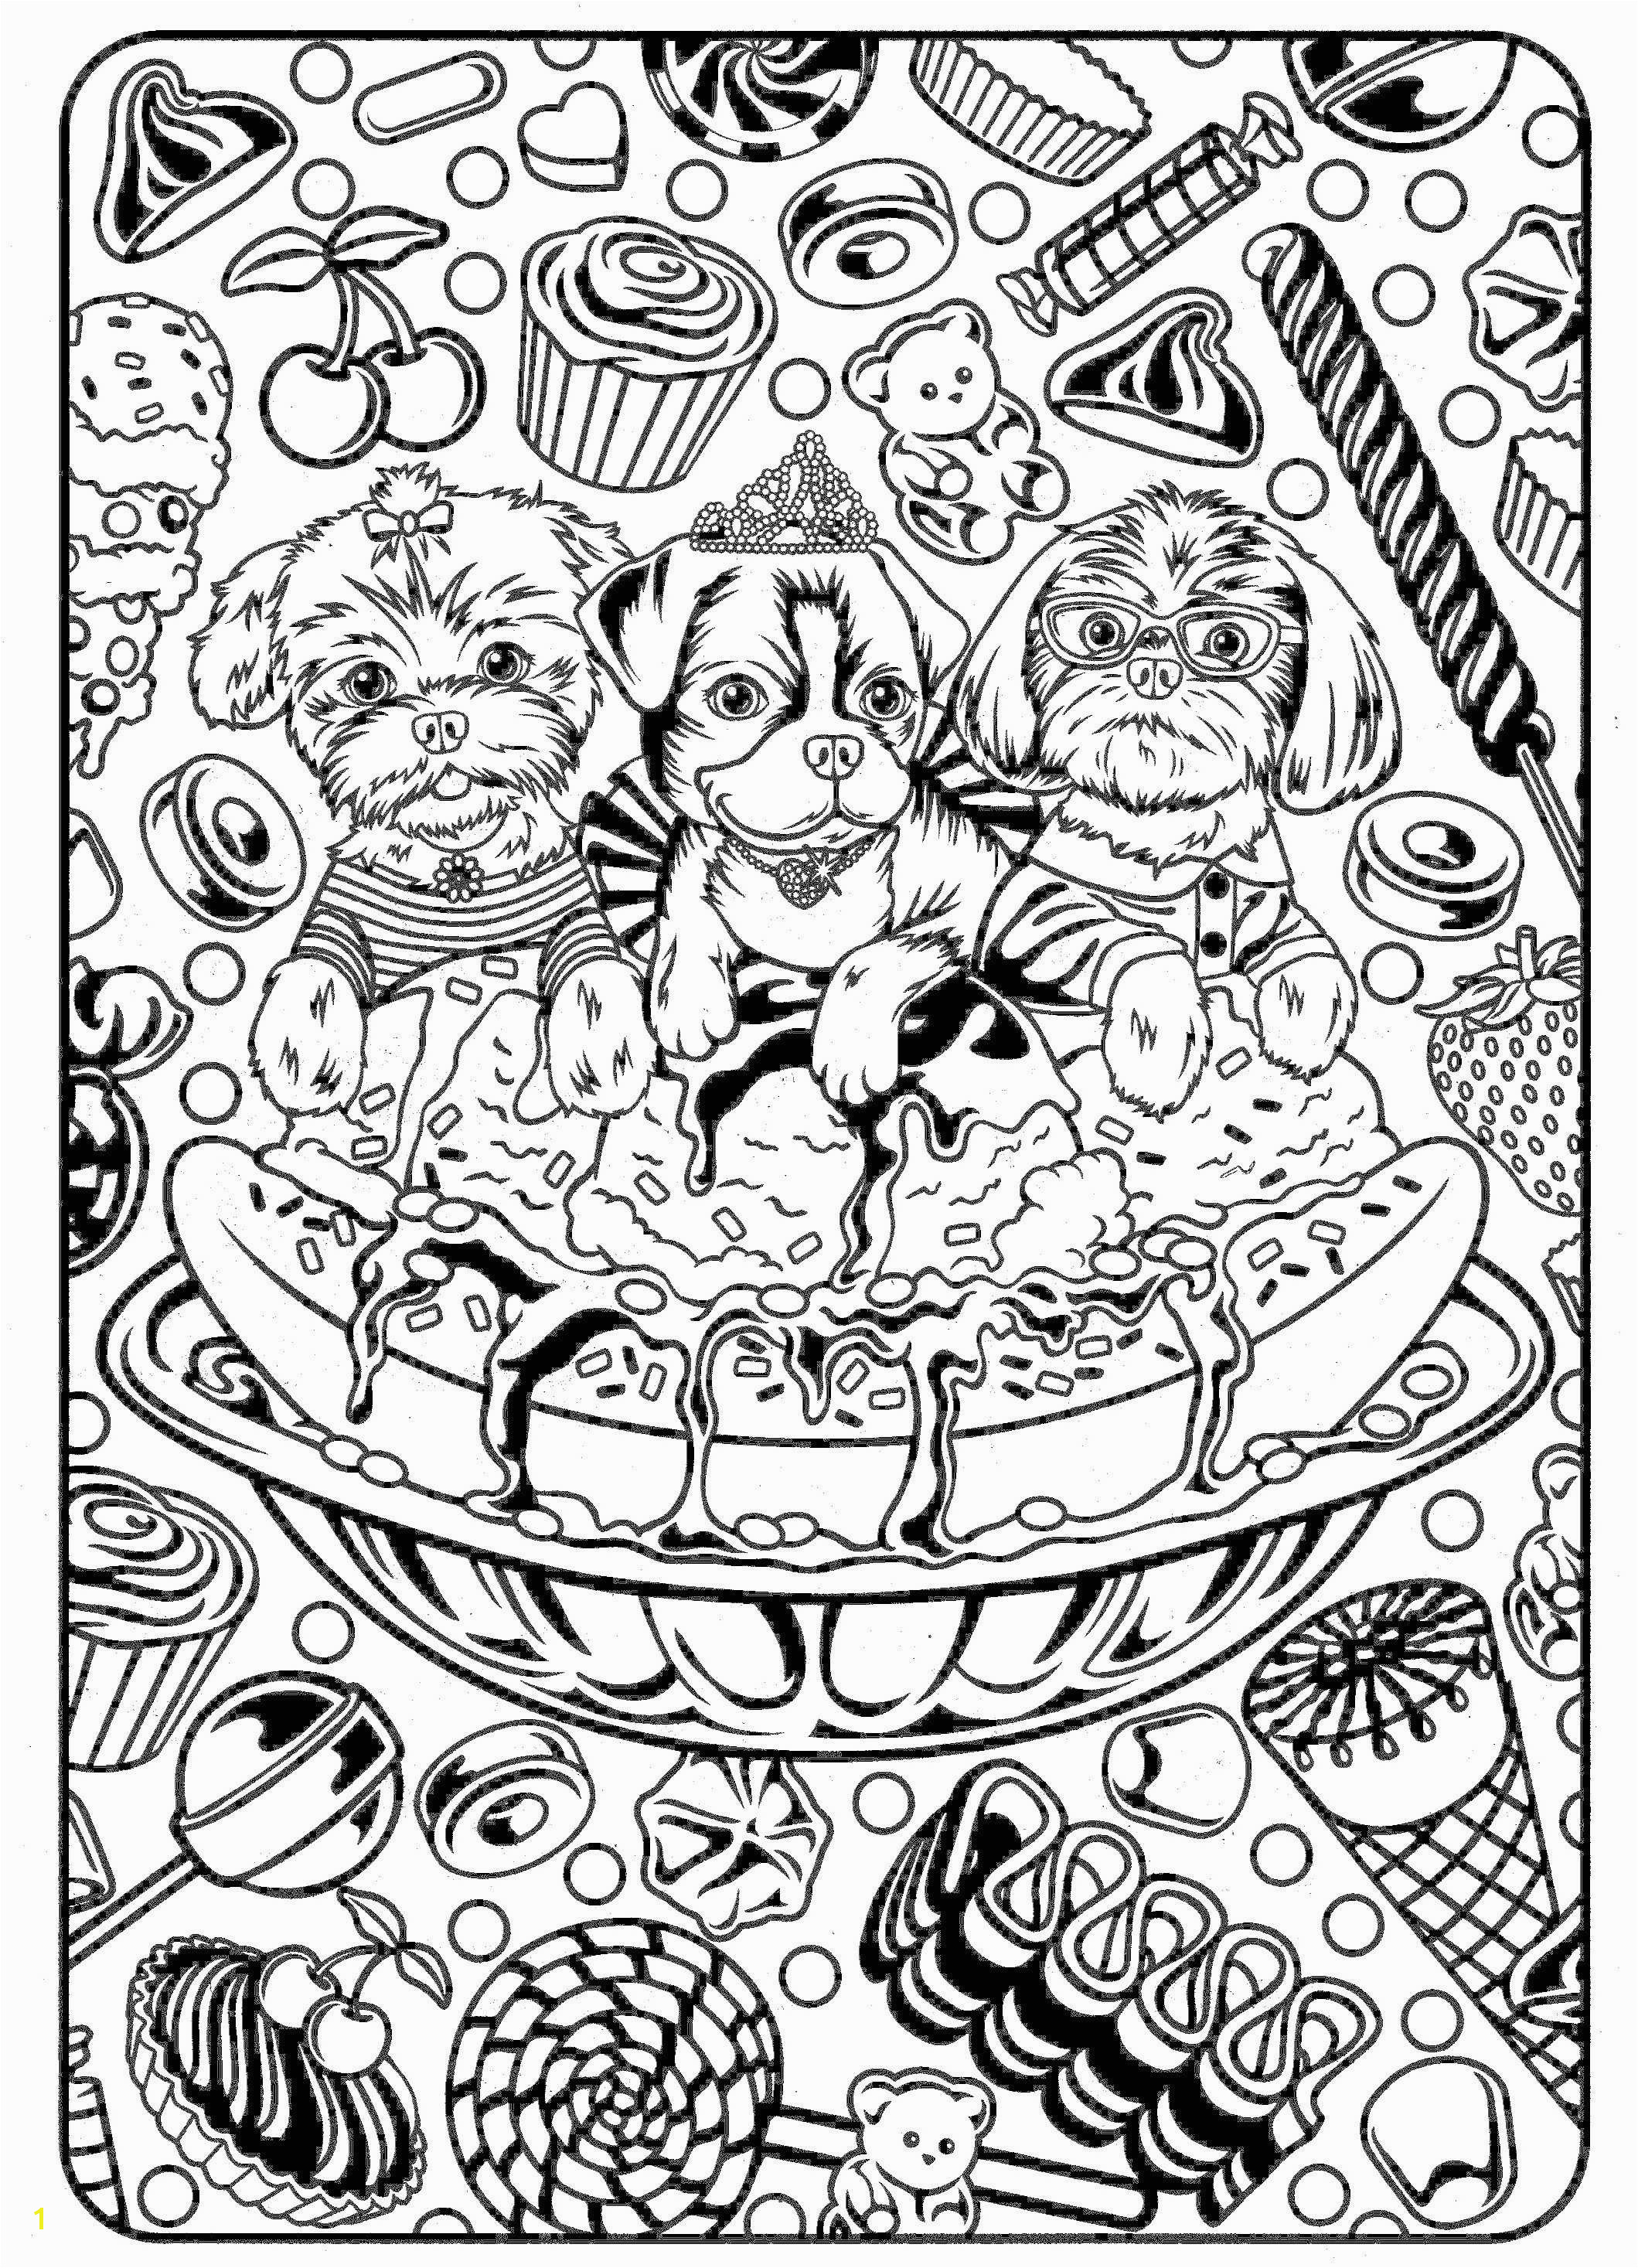 Free Printable Trippy Coloring Pages Best Free Printable Mushroom Coloring Pages Nature Coloring Pages